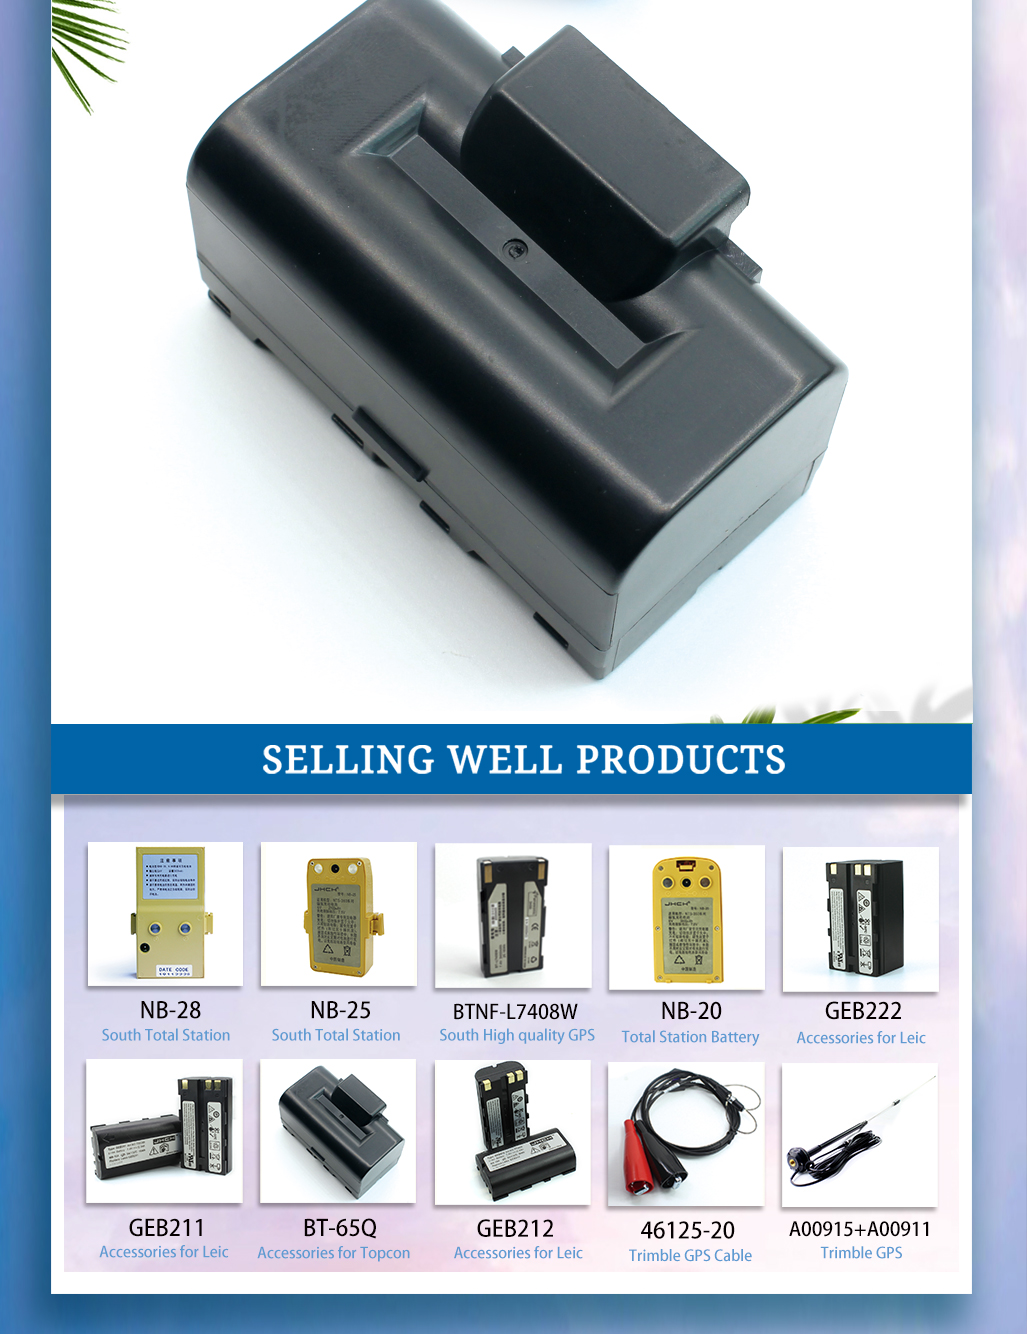 Topcon GTS-720 Battery BT-65Q Li-ion Battery For Topcon GTS-720,GTS-750 And GTS-900 Series Total Station